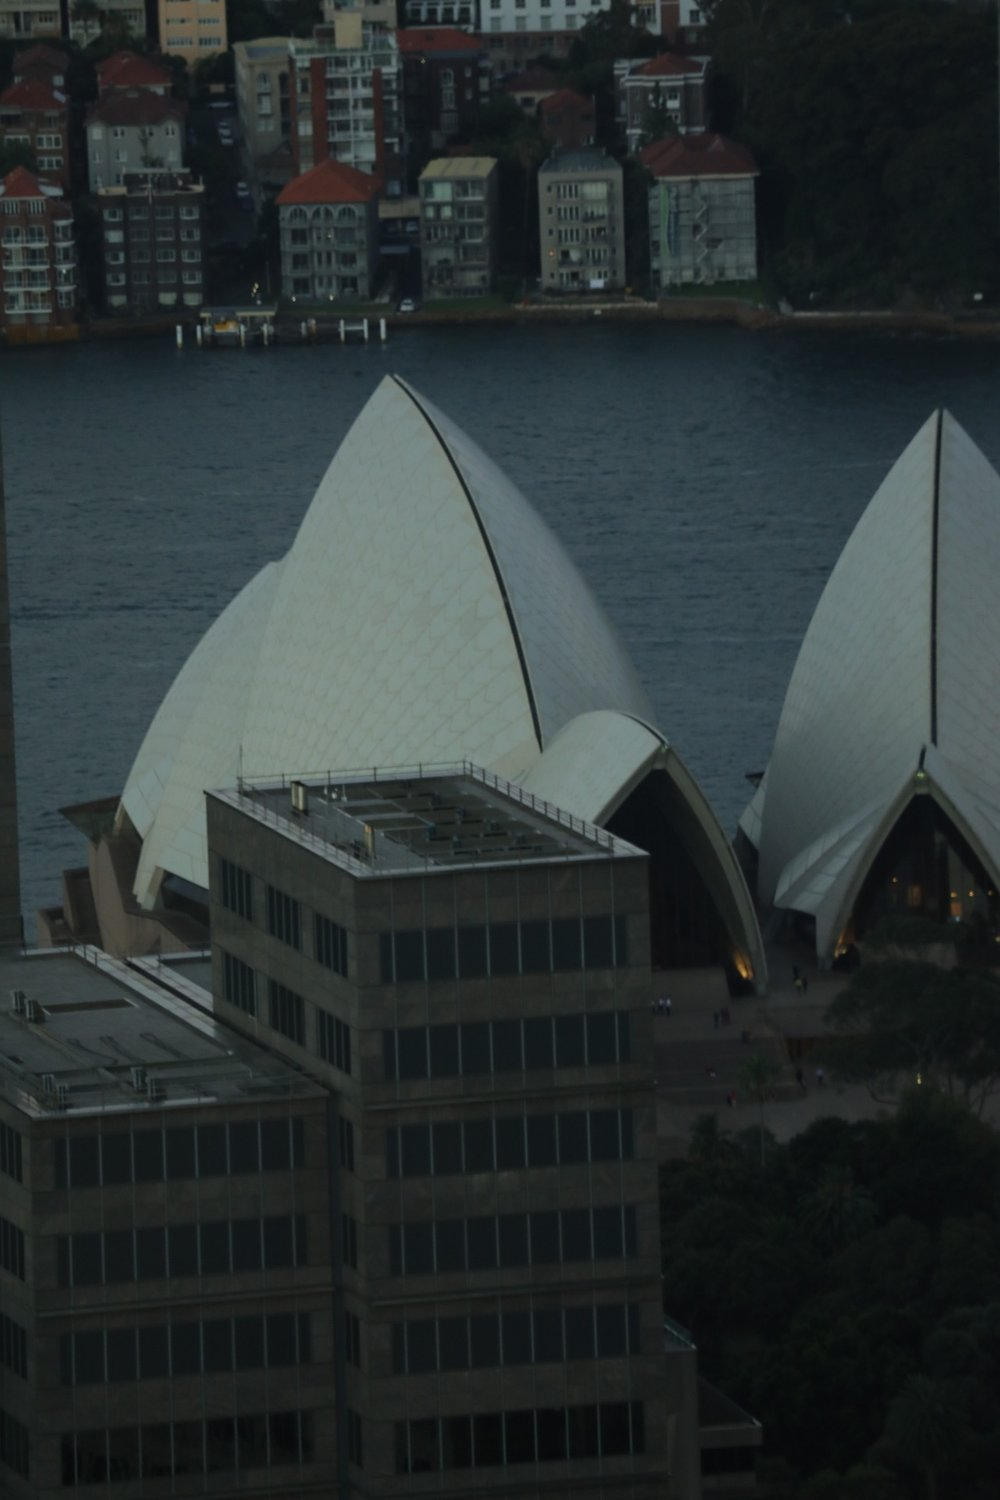 A glimpse of the Sydney Opera House from the Eye Tower